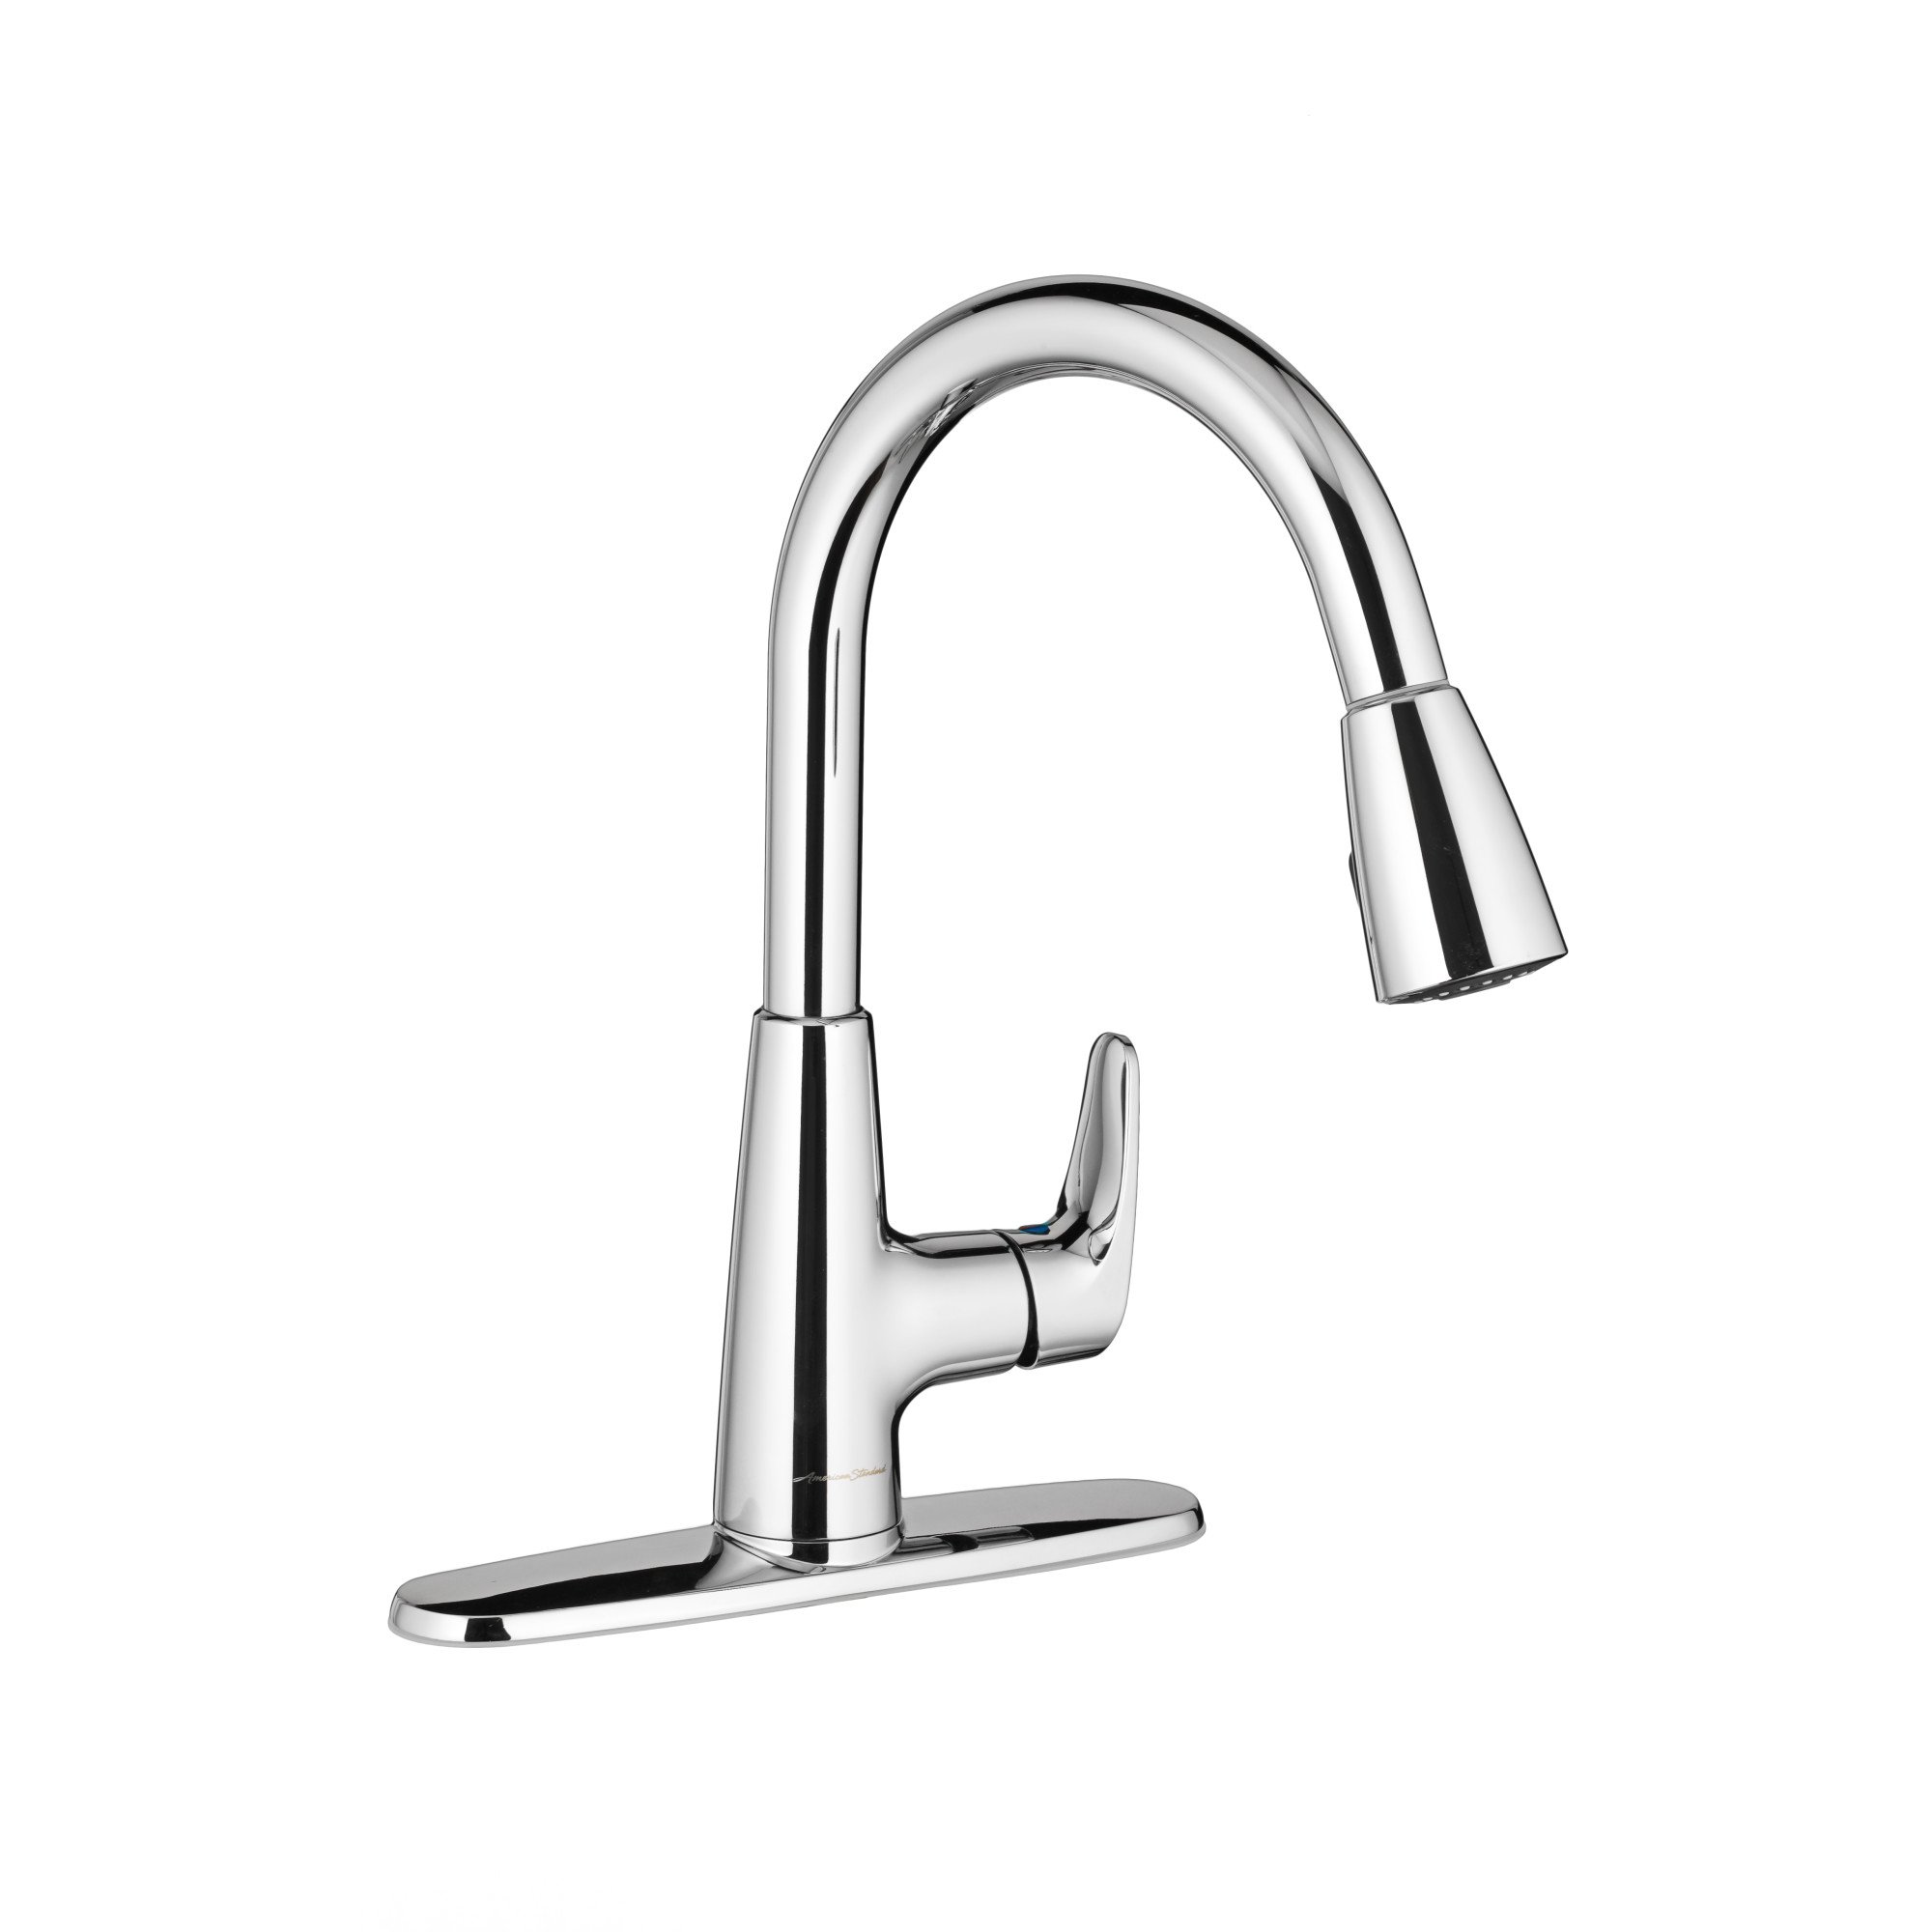 American Standard 7074300.002 Colony Pro Single-Handle Kitchen Faucet with Pull-Down Spray, Polished Chrome